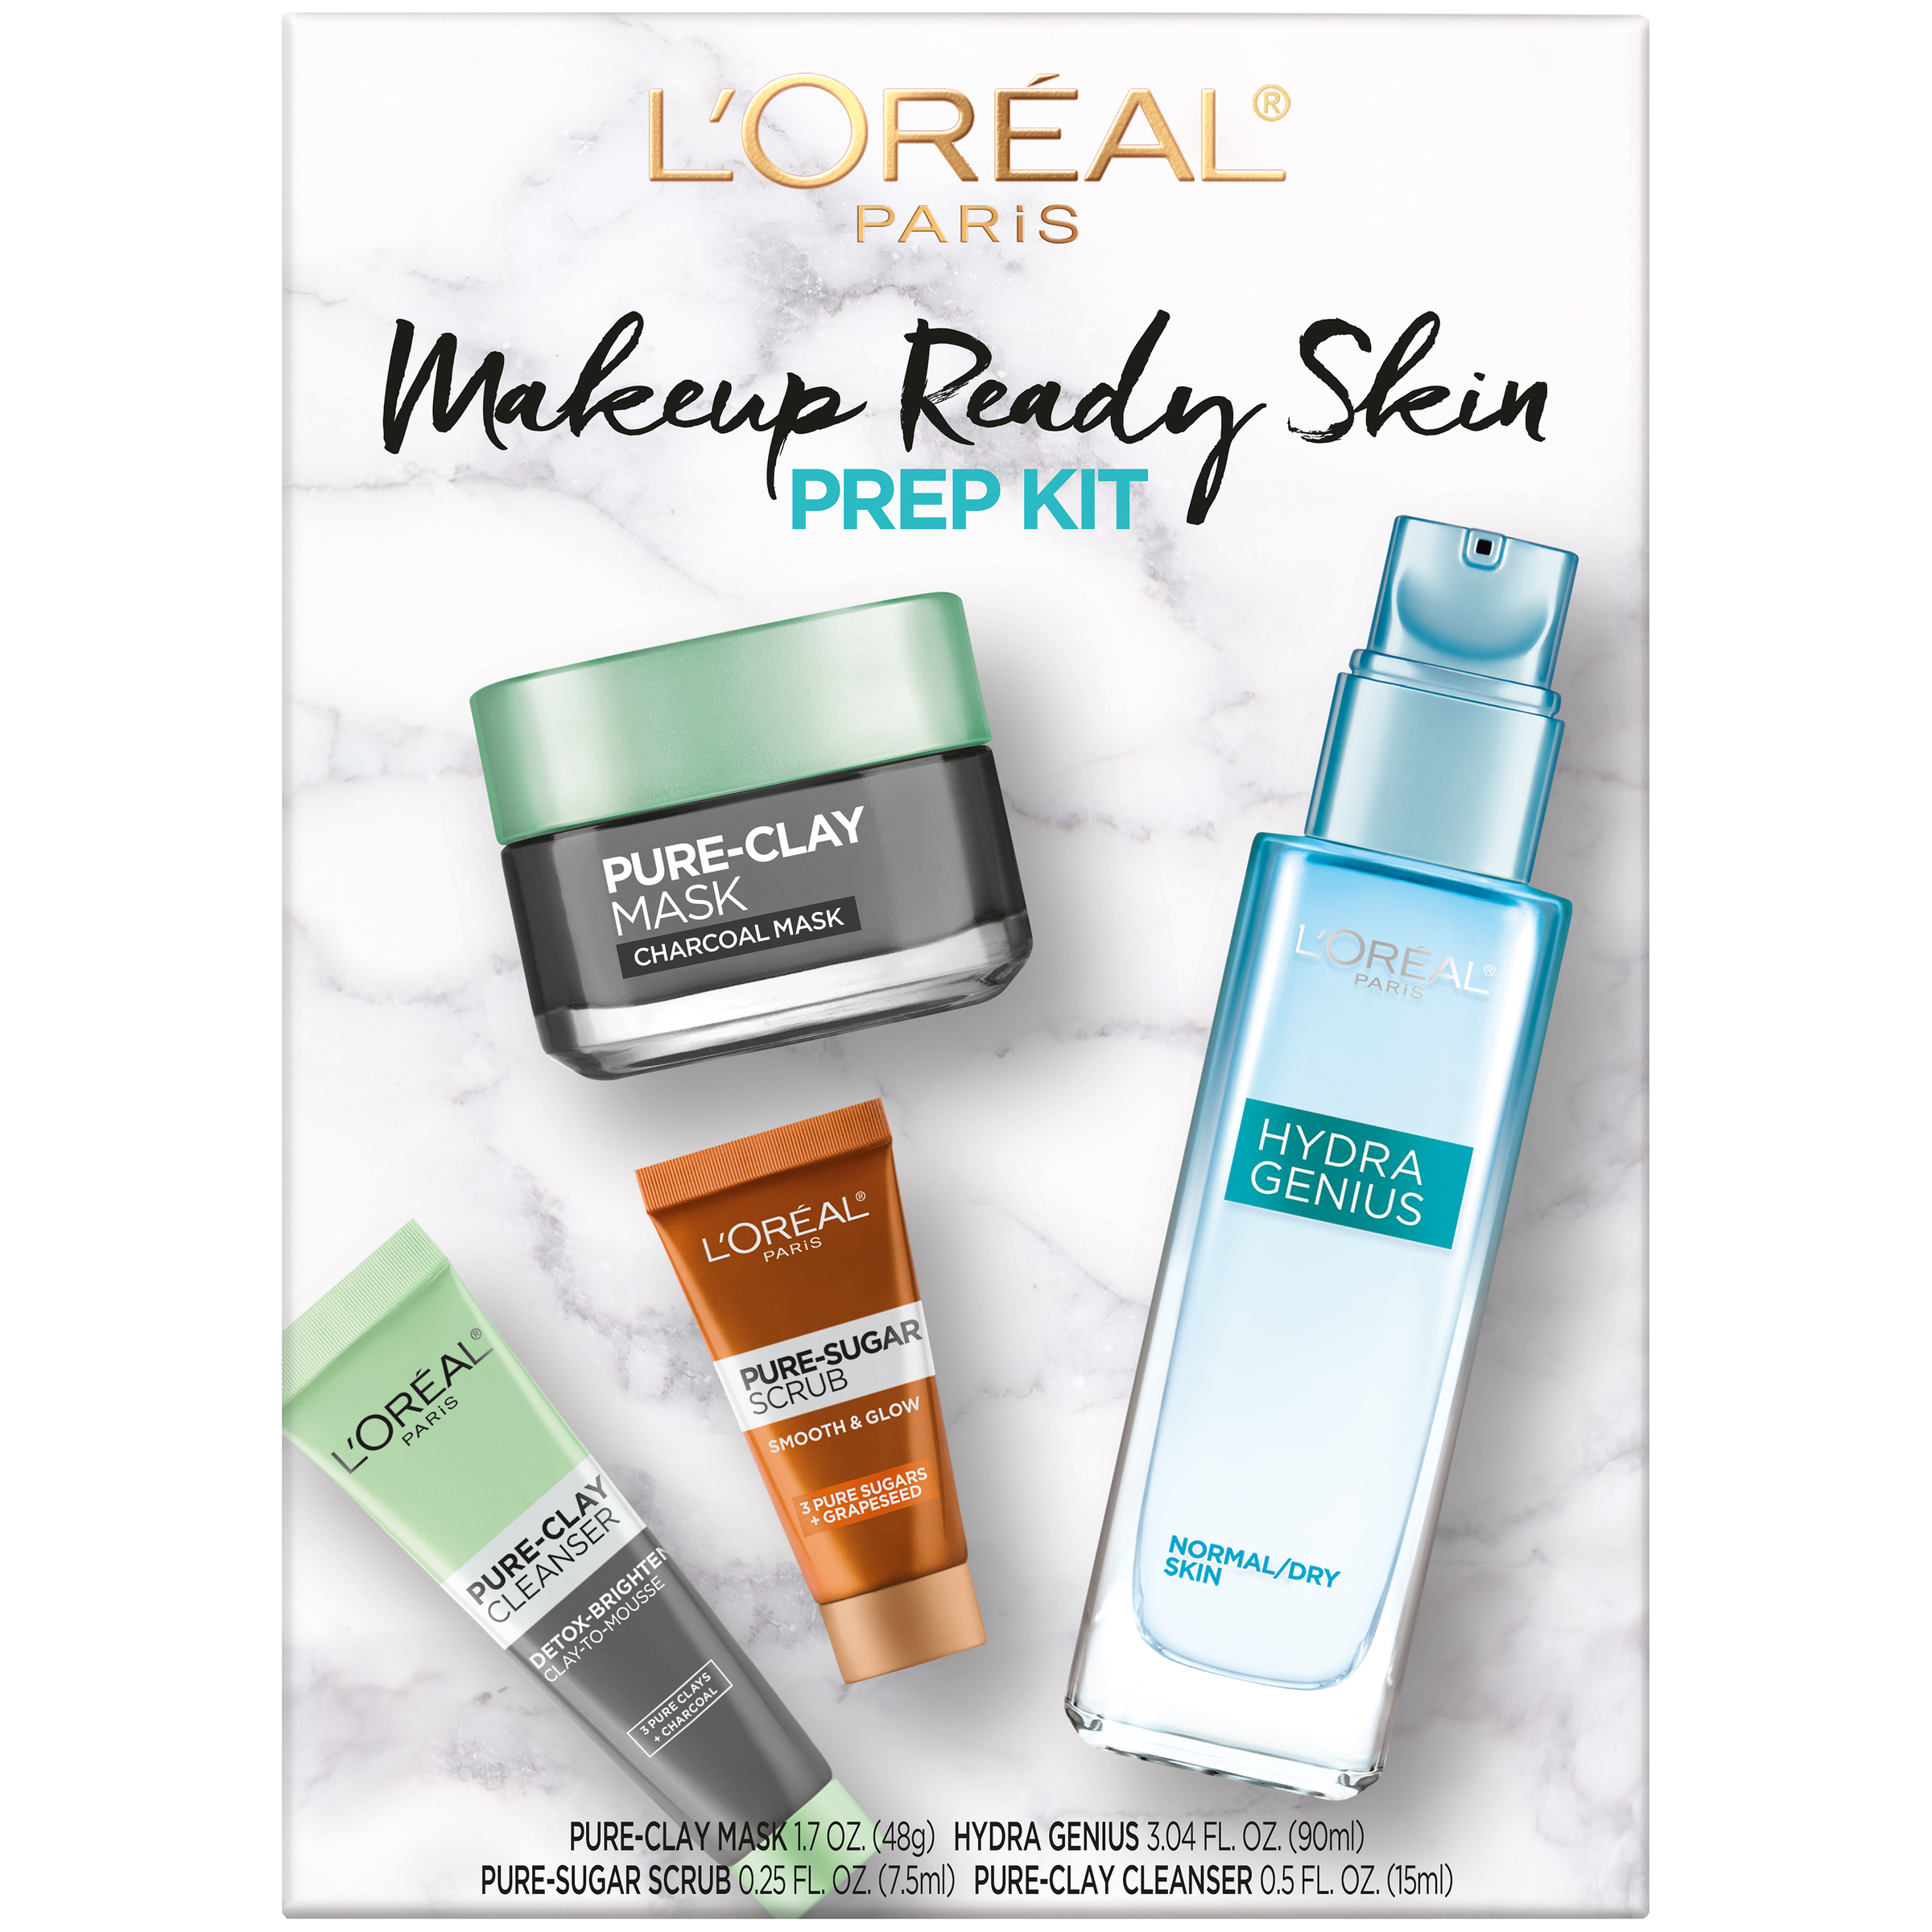 ($26.13 Value) L'Oreal Paris Skincare Makeup Ready Skin Prep Set, 4 Pieces